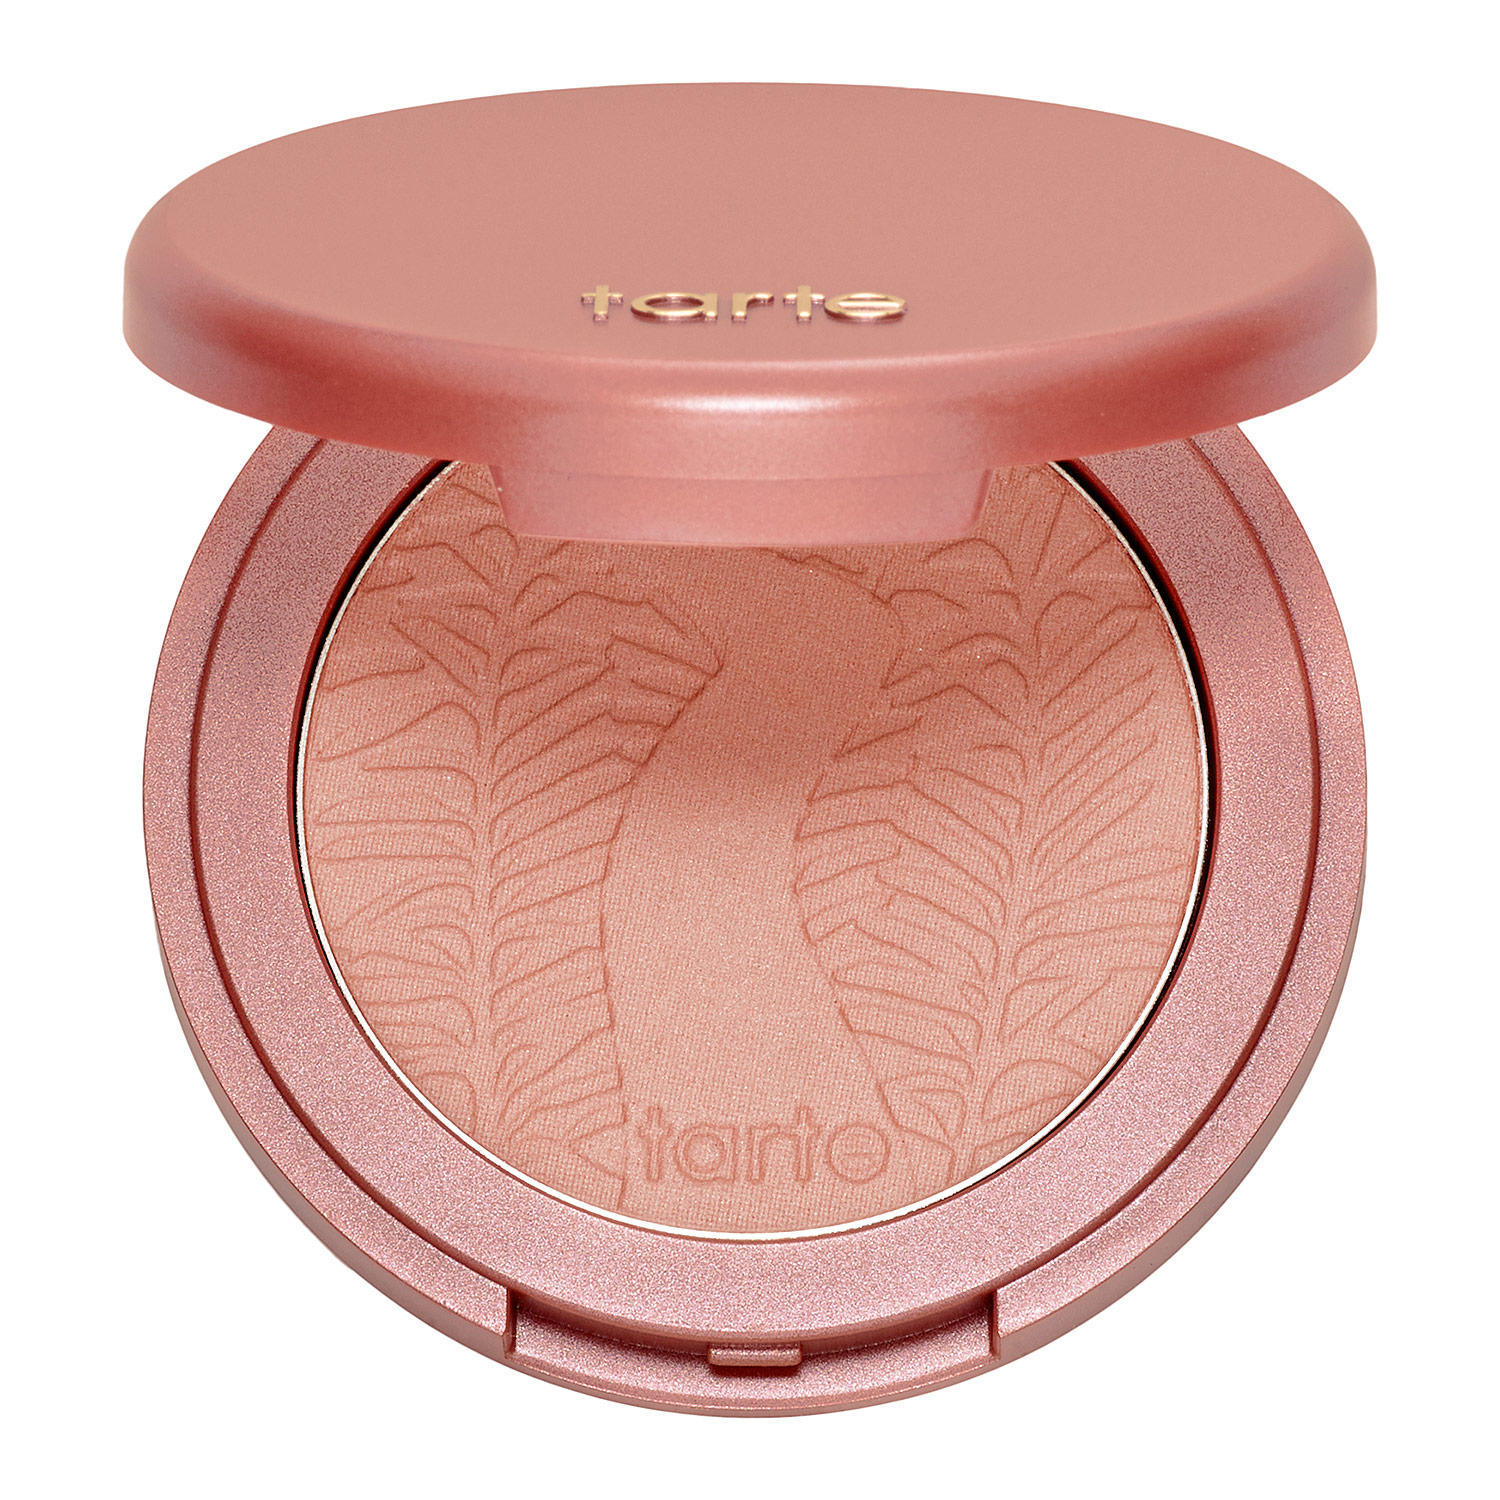 Tarte Amazonian Clay 12-Hour Blush Risque